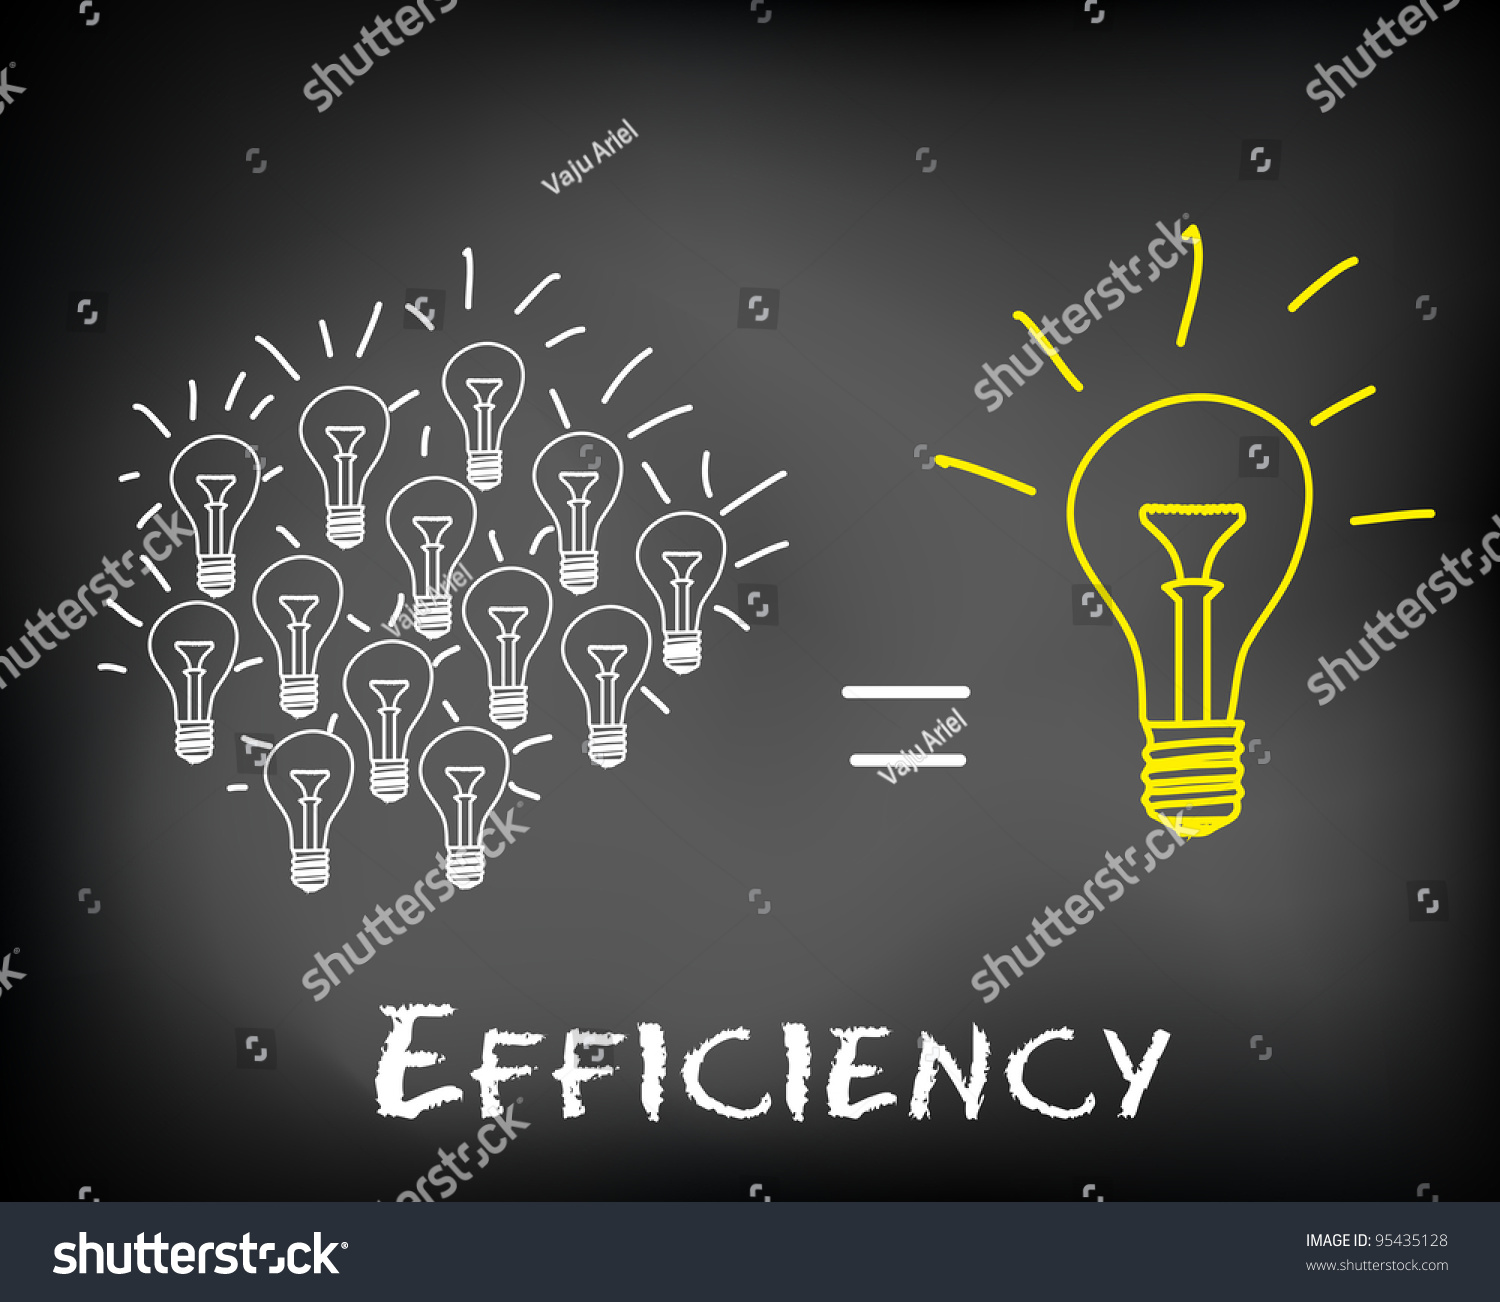 Royalty Free Stock Illustration Of Conceptual Efficiency Teamwork Diagram Incandescent Light Bulb Group Picture Image By Tag Brainstorming Idea On Black Chalkboard With Bulbs